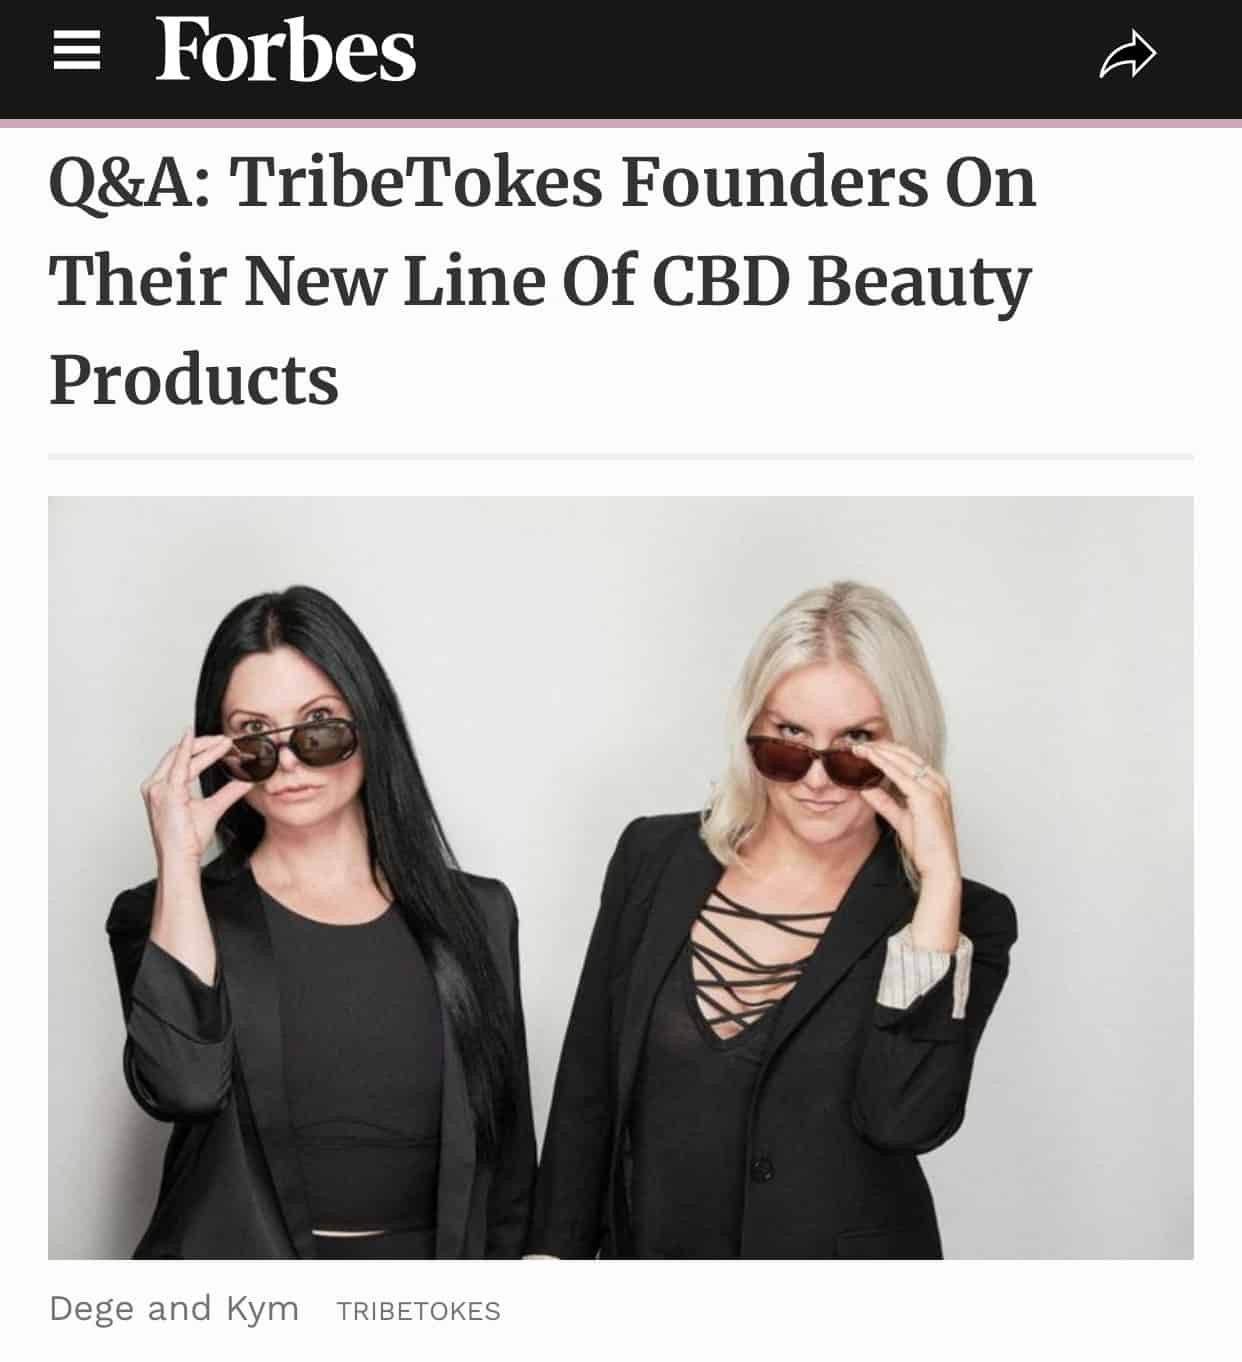 Forbes Q&A Screenshot_Edited